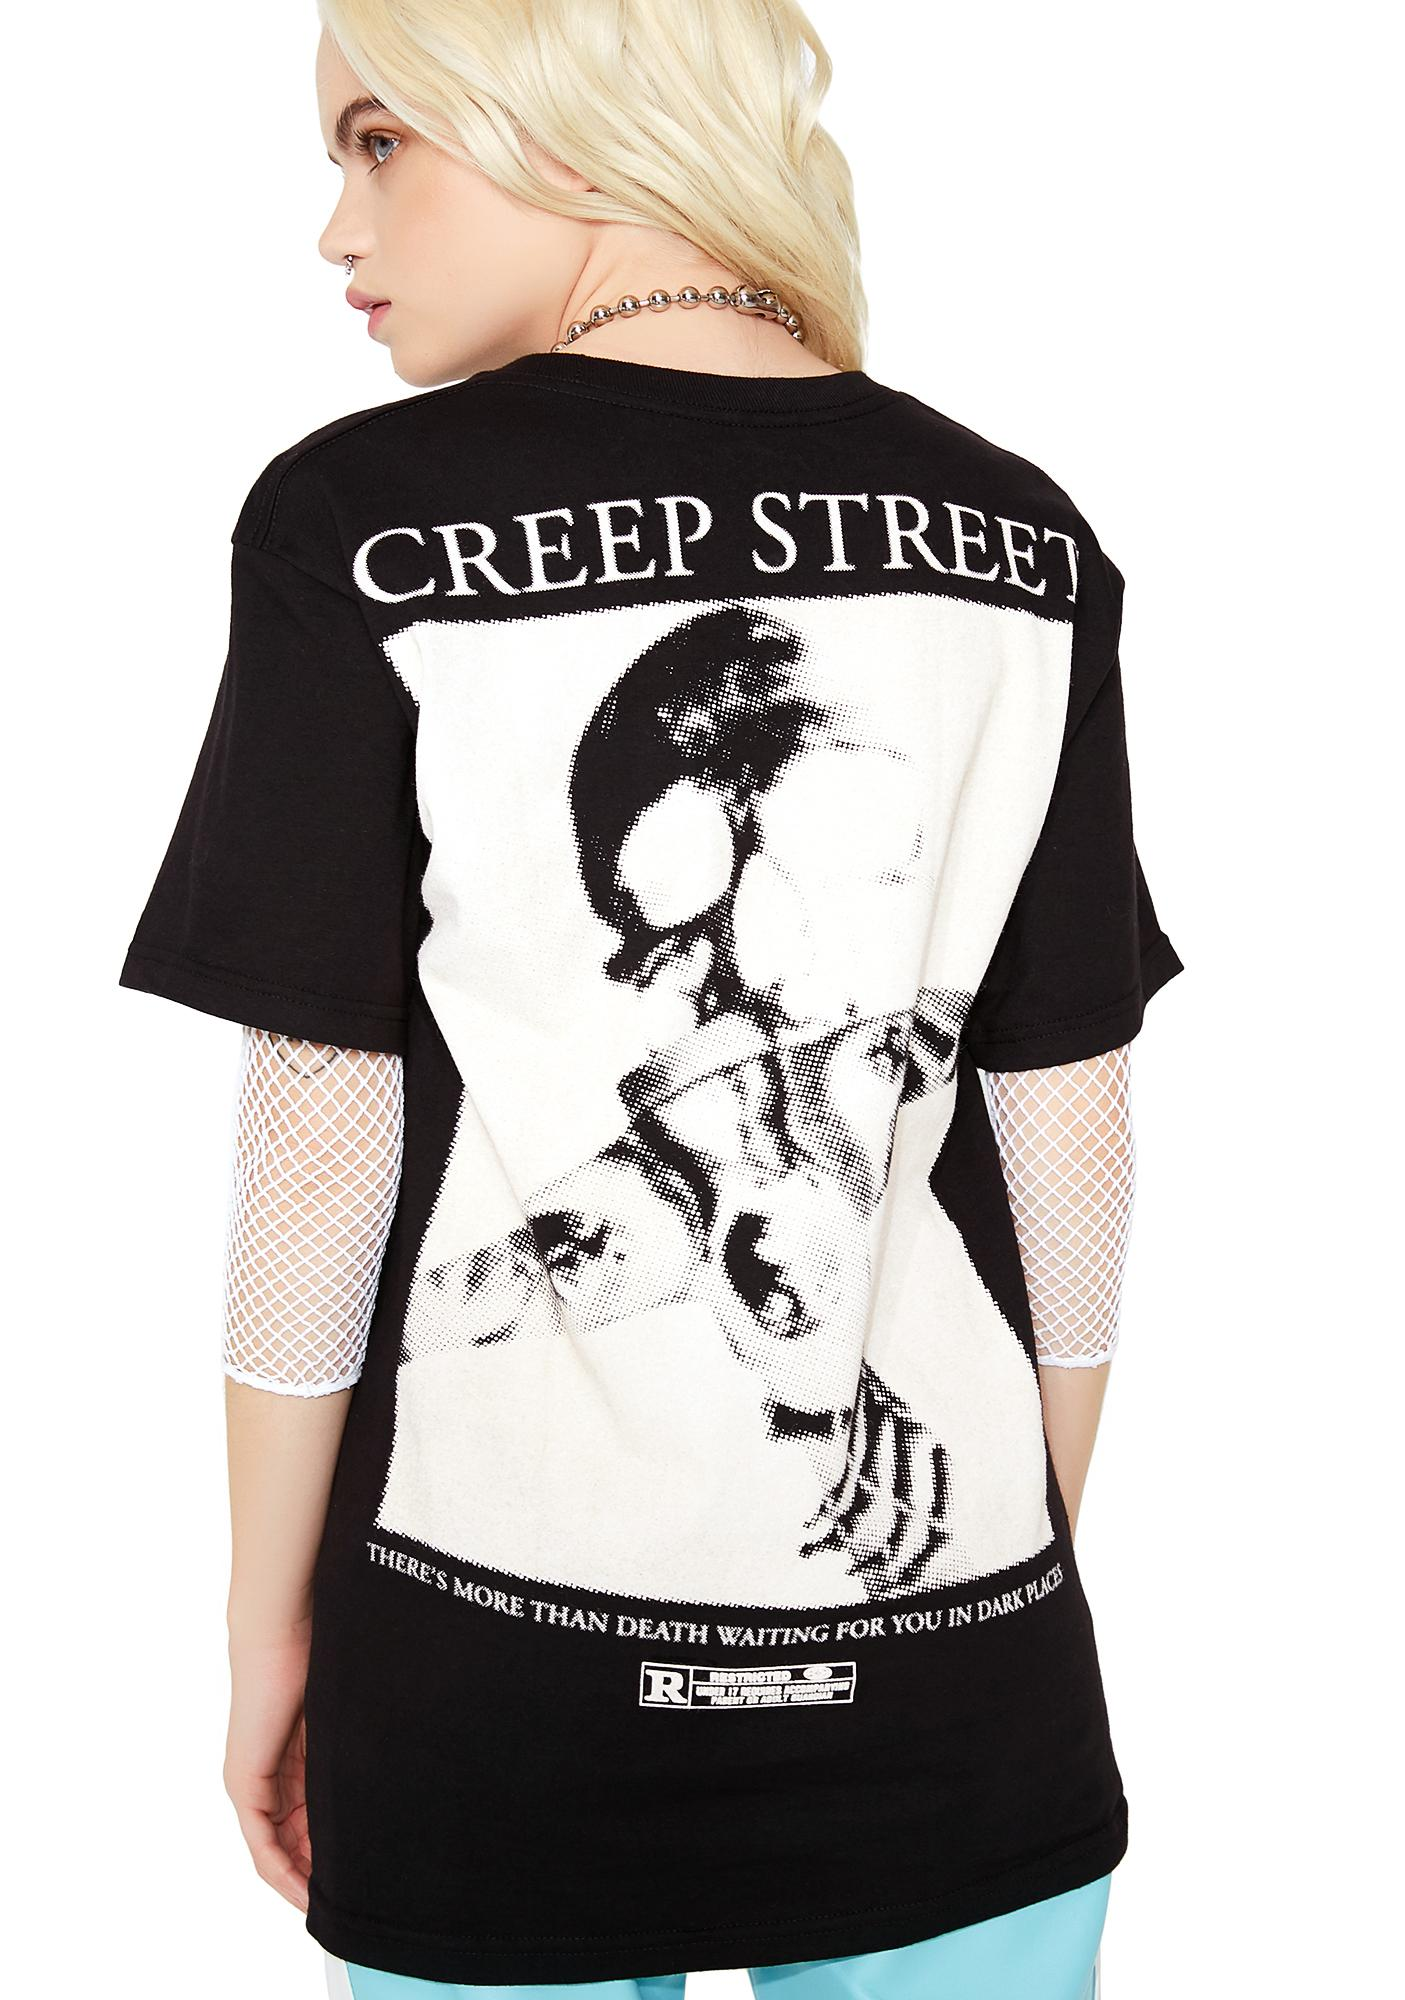 Creep Street Blackout Tee